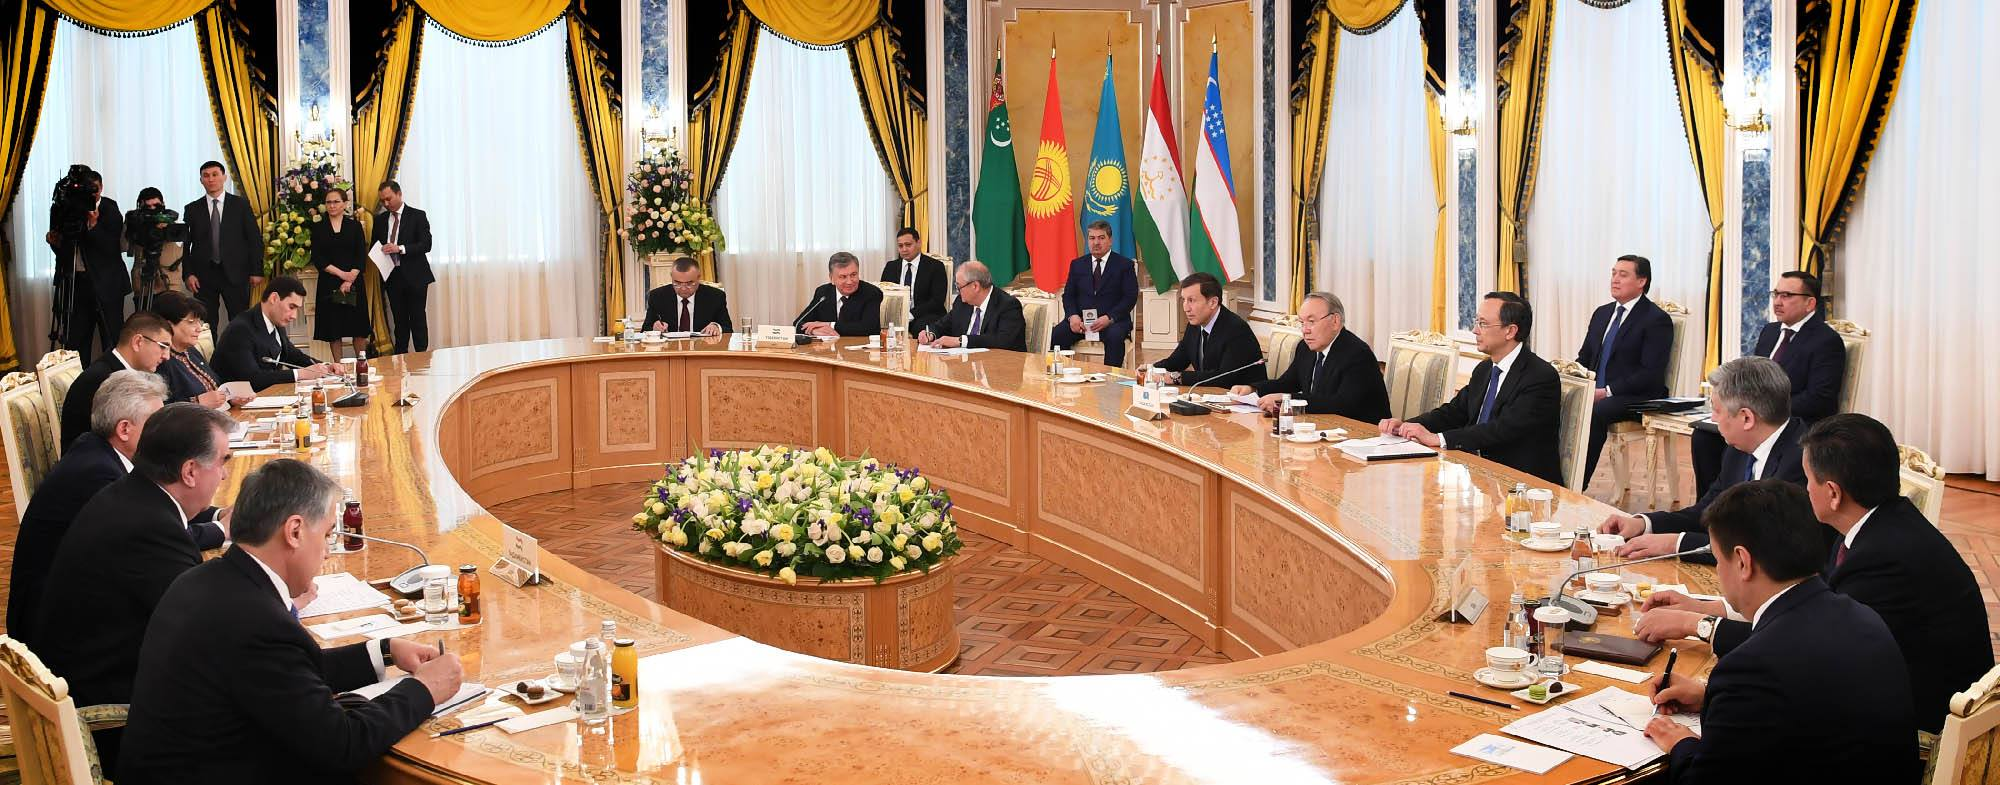 Central Asian heads of state confer during the March 15, 2018 working meeting.